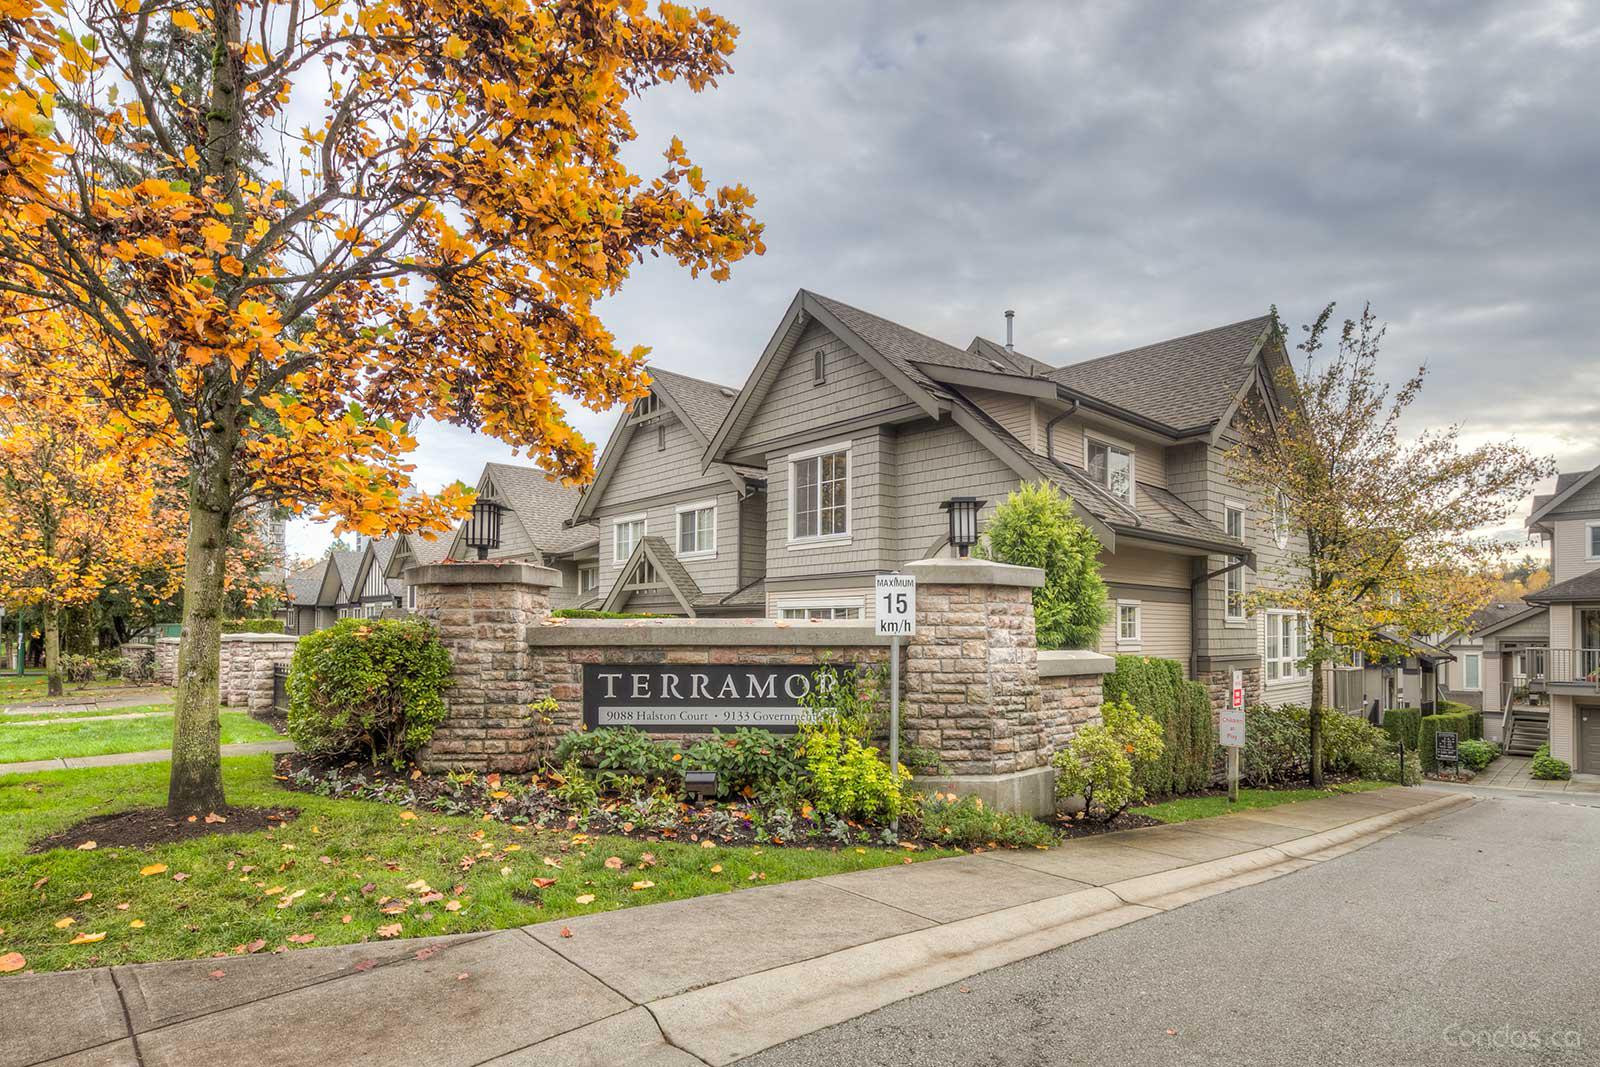 Terramor at 9133 Government St, Burnaby 1